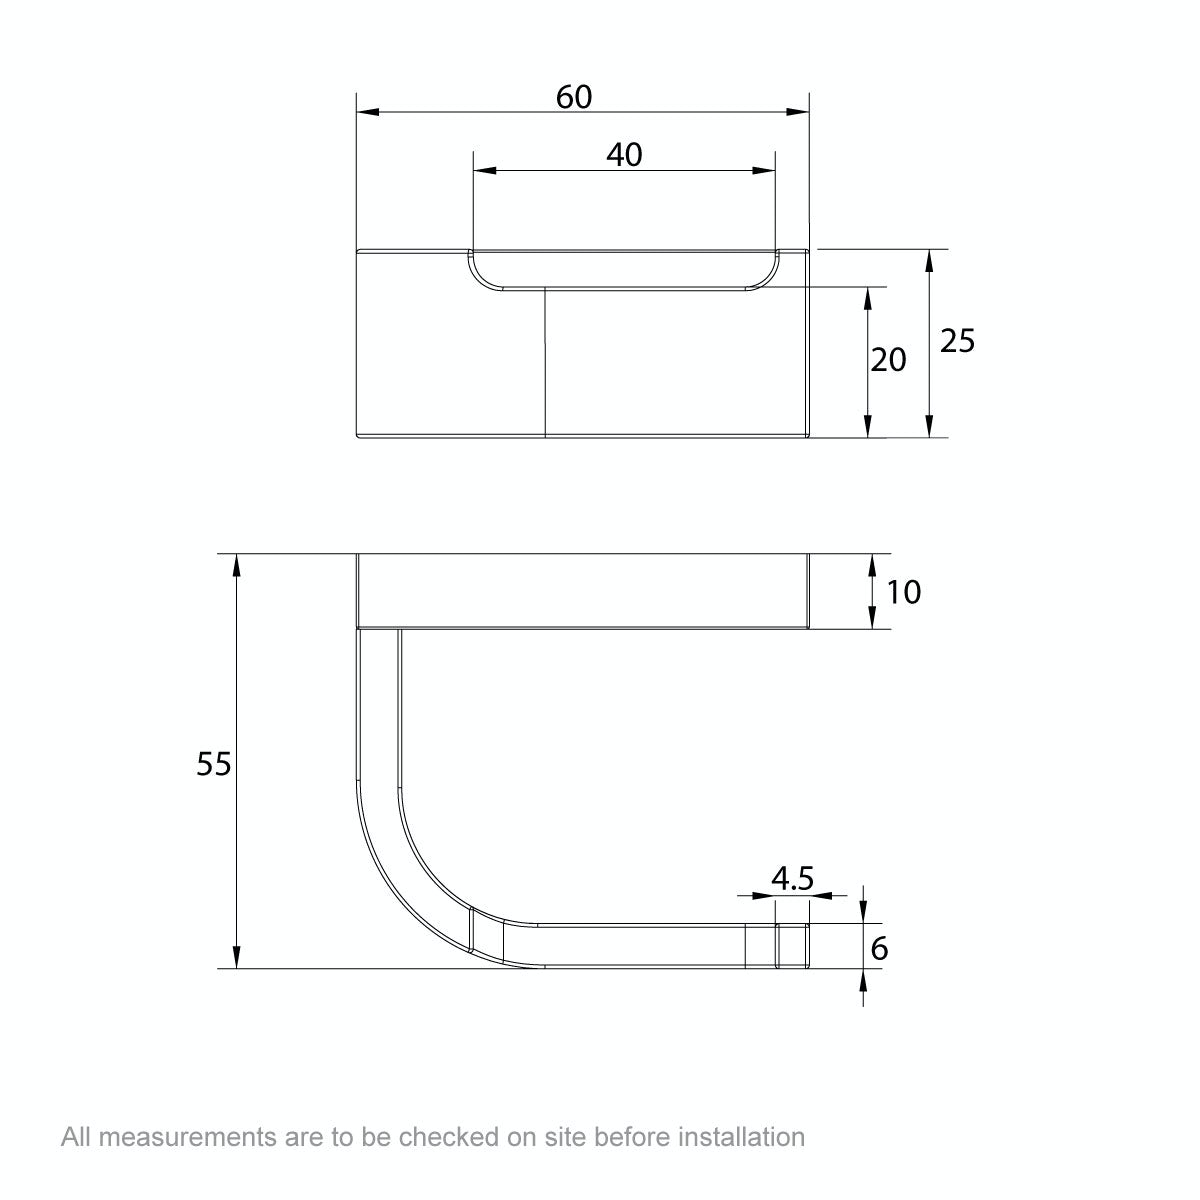 Dimensions for Mode Spencer robe hook